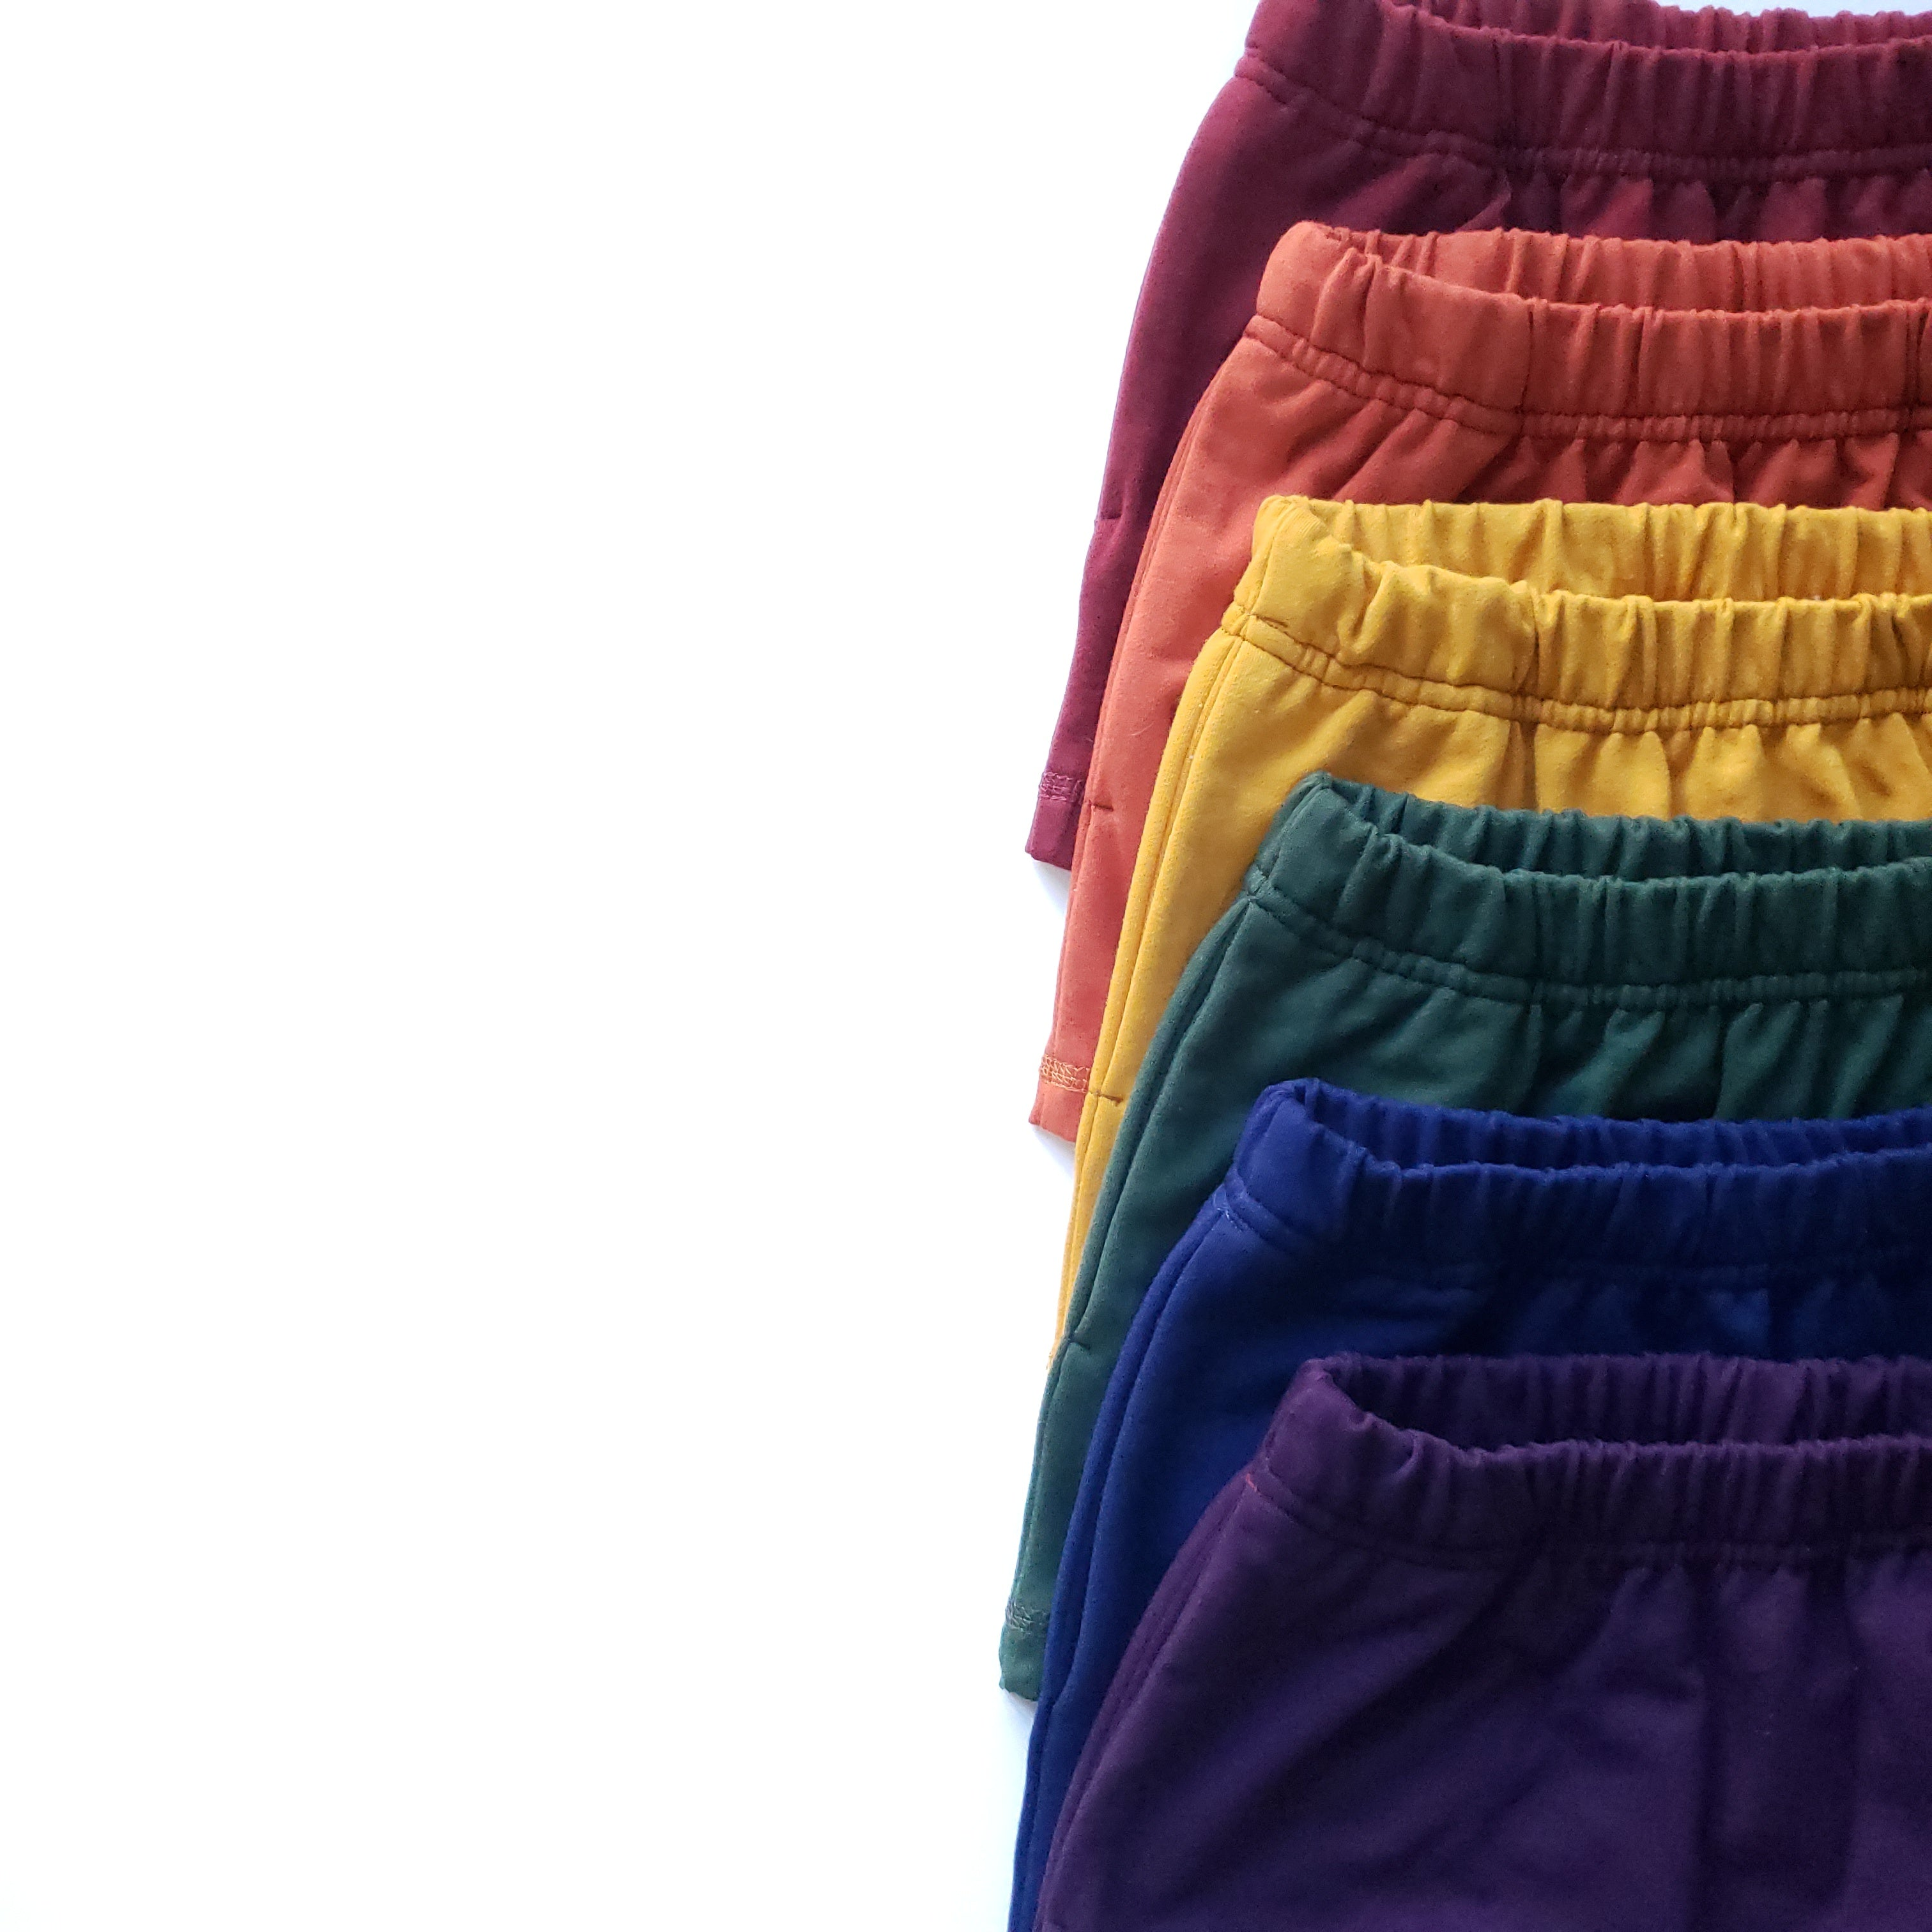 Everyday Shorts in red, orange, yellow, green, blue and purple